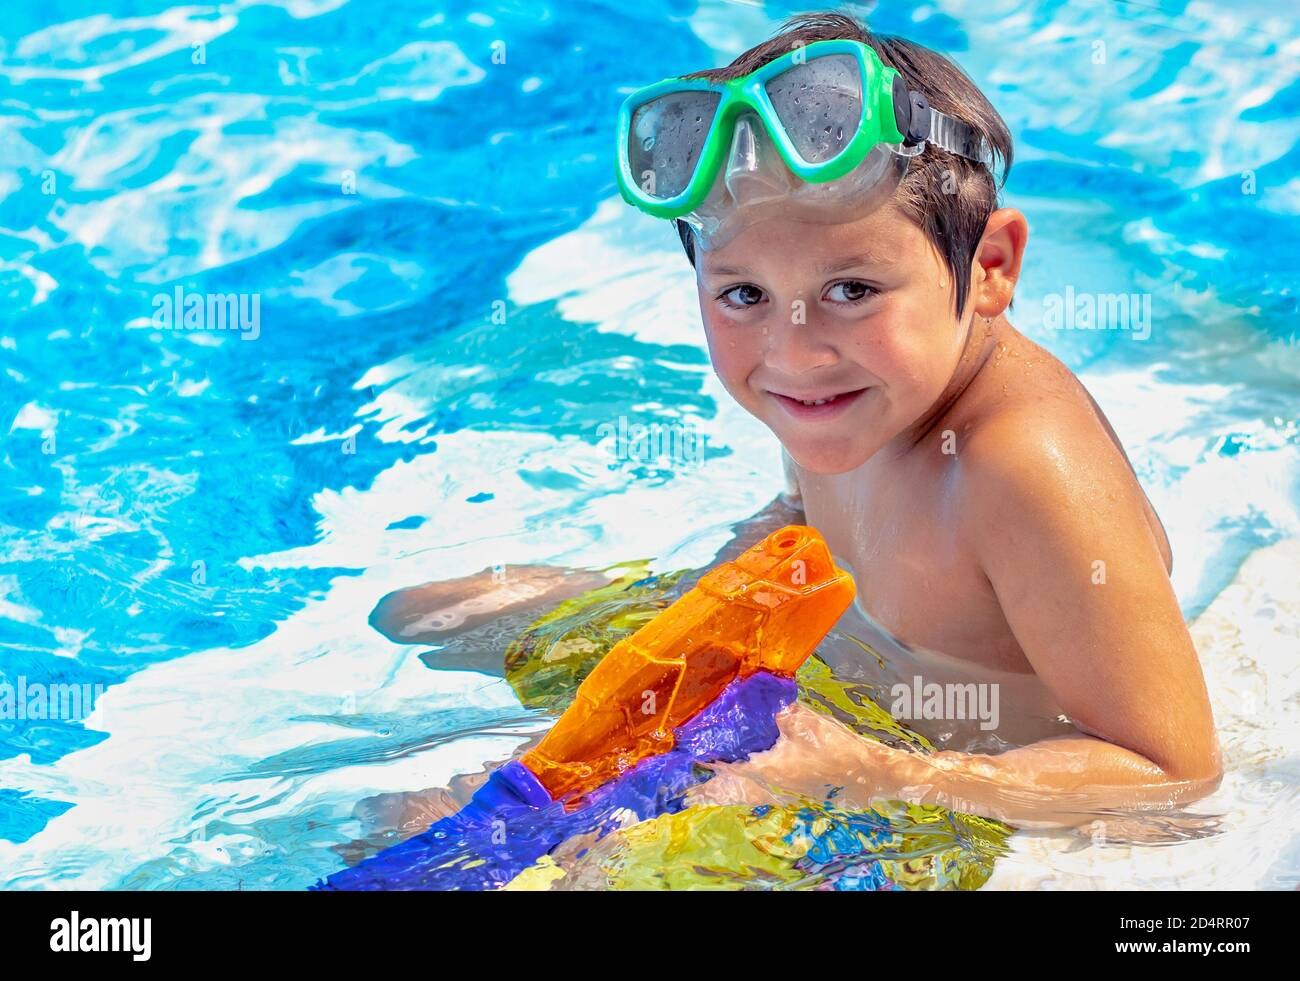 Smiling young boy with pool toys plays in a in ground pool Stock Photo